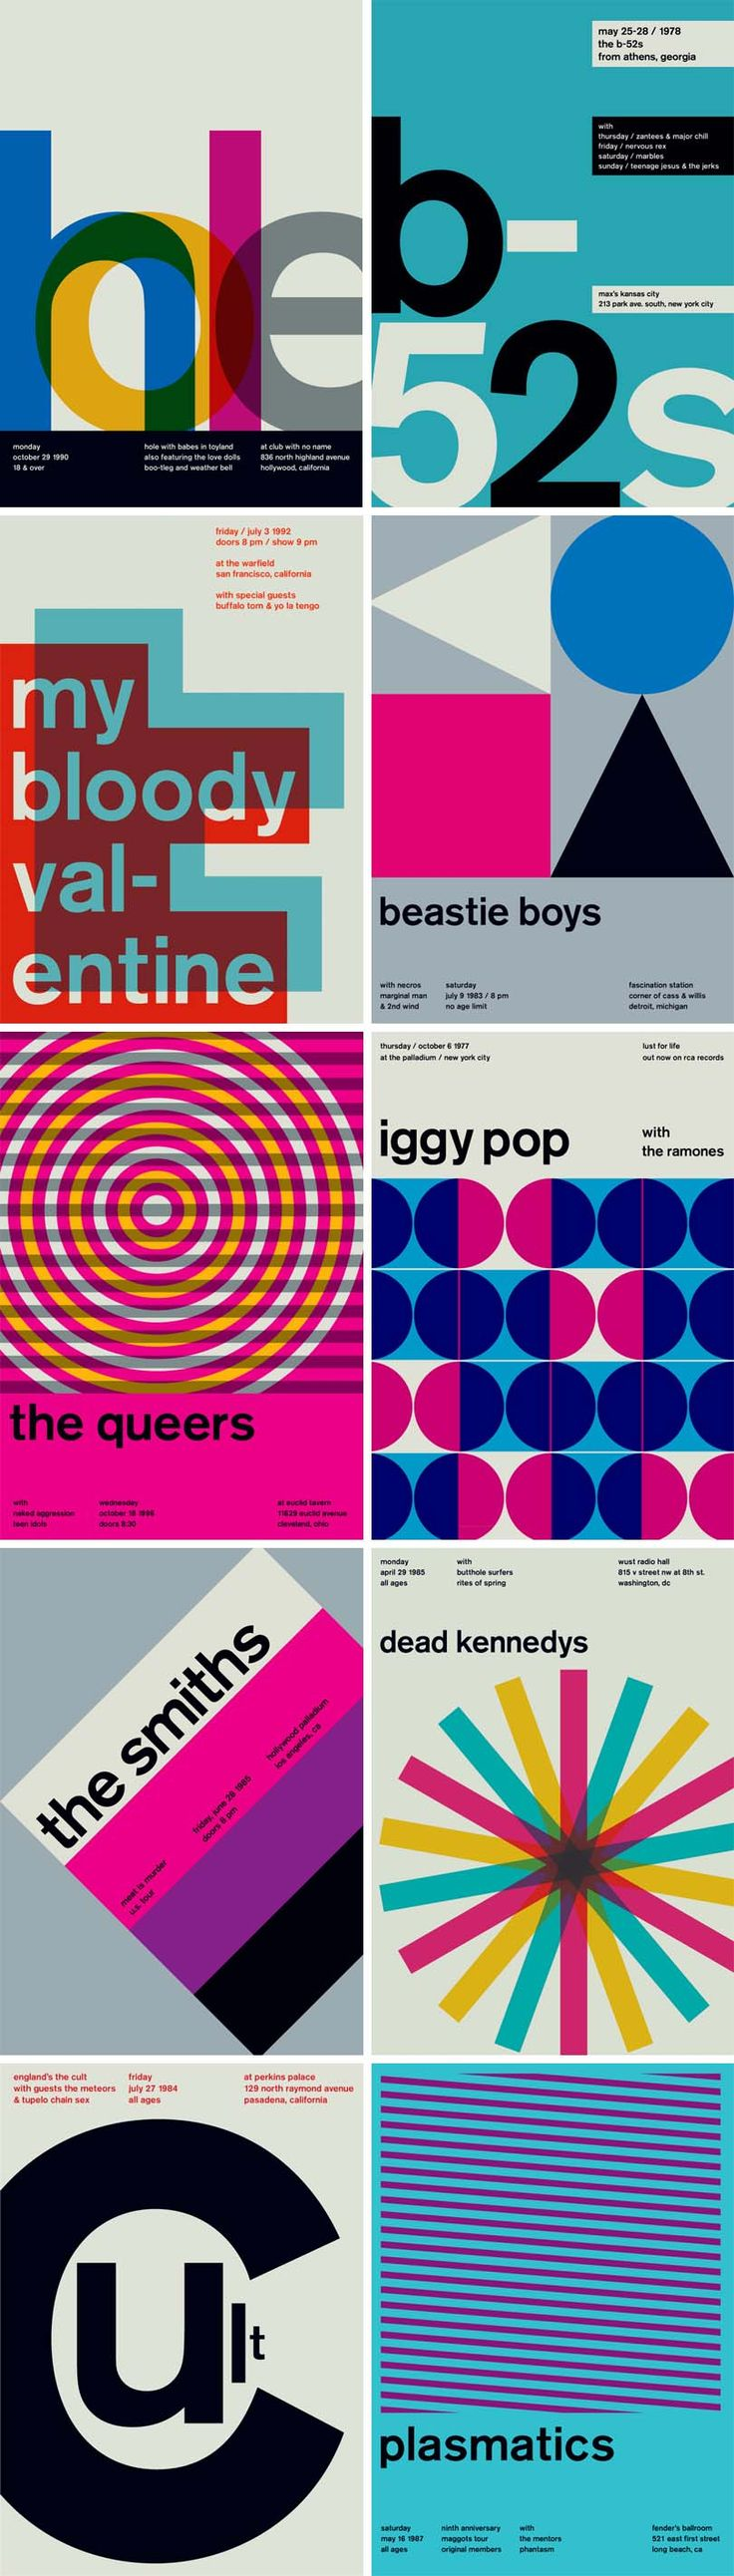 Poster design ideas pinterest - Swissted Mike Joyce Graphic Design Typography Redesigning Old Punk Hardcore